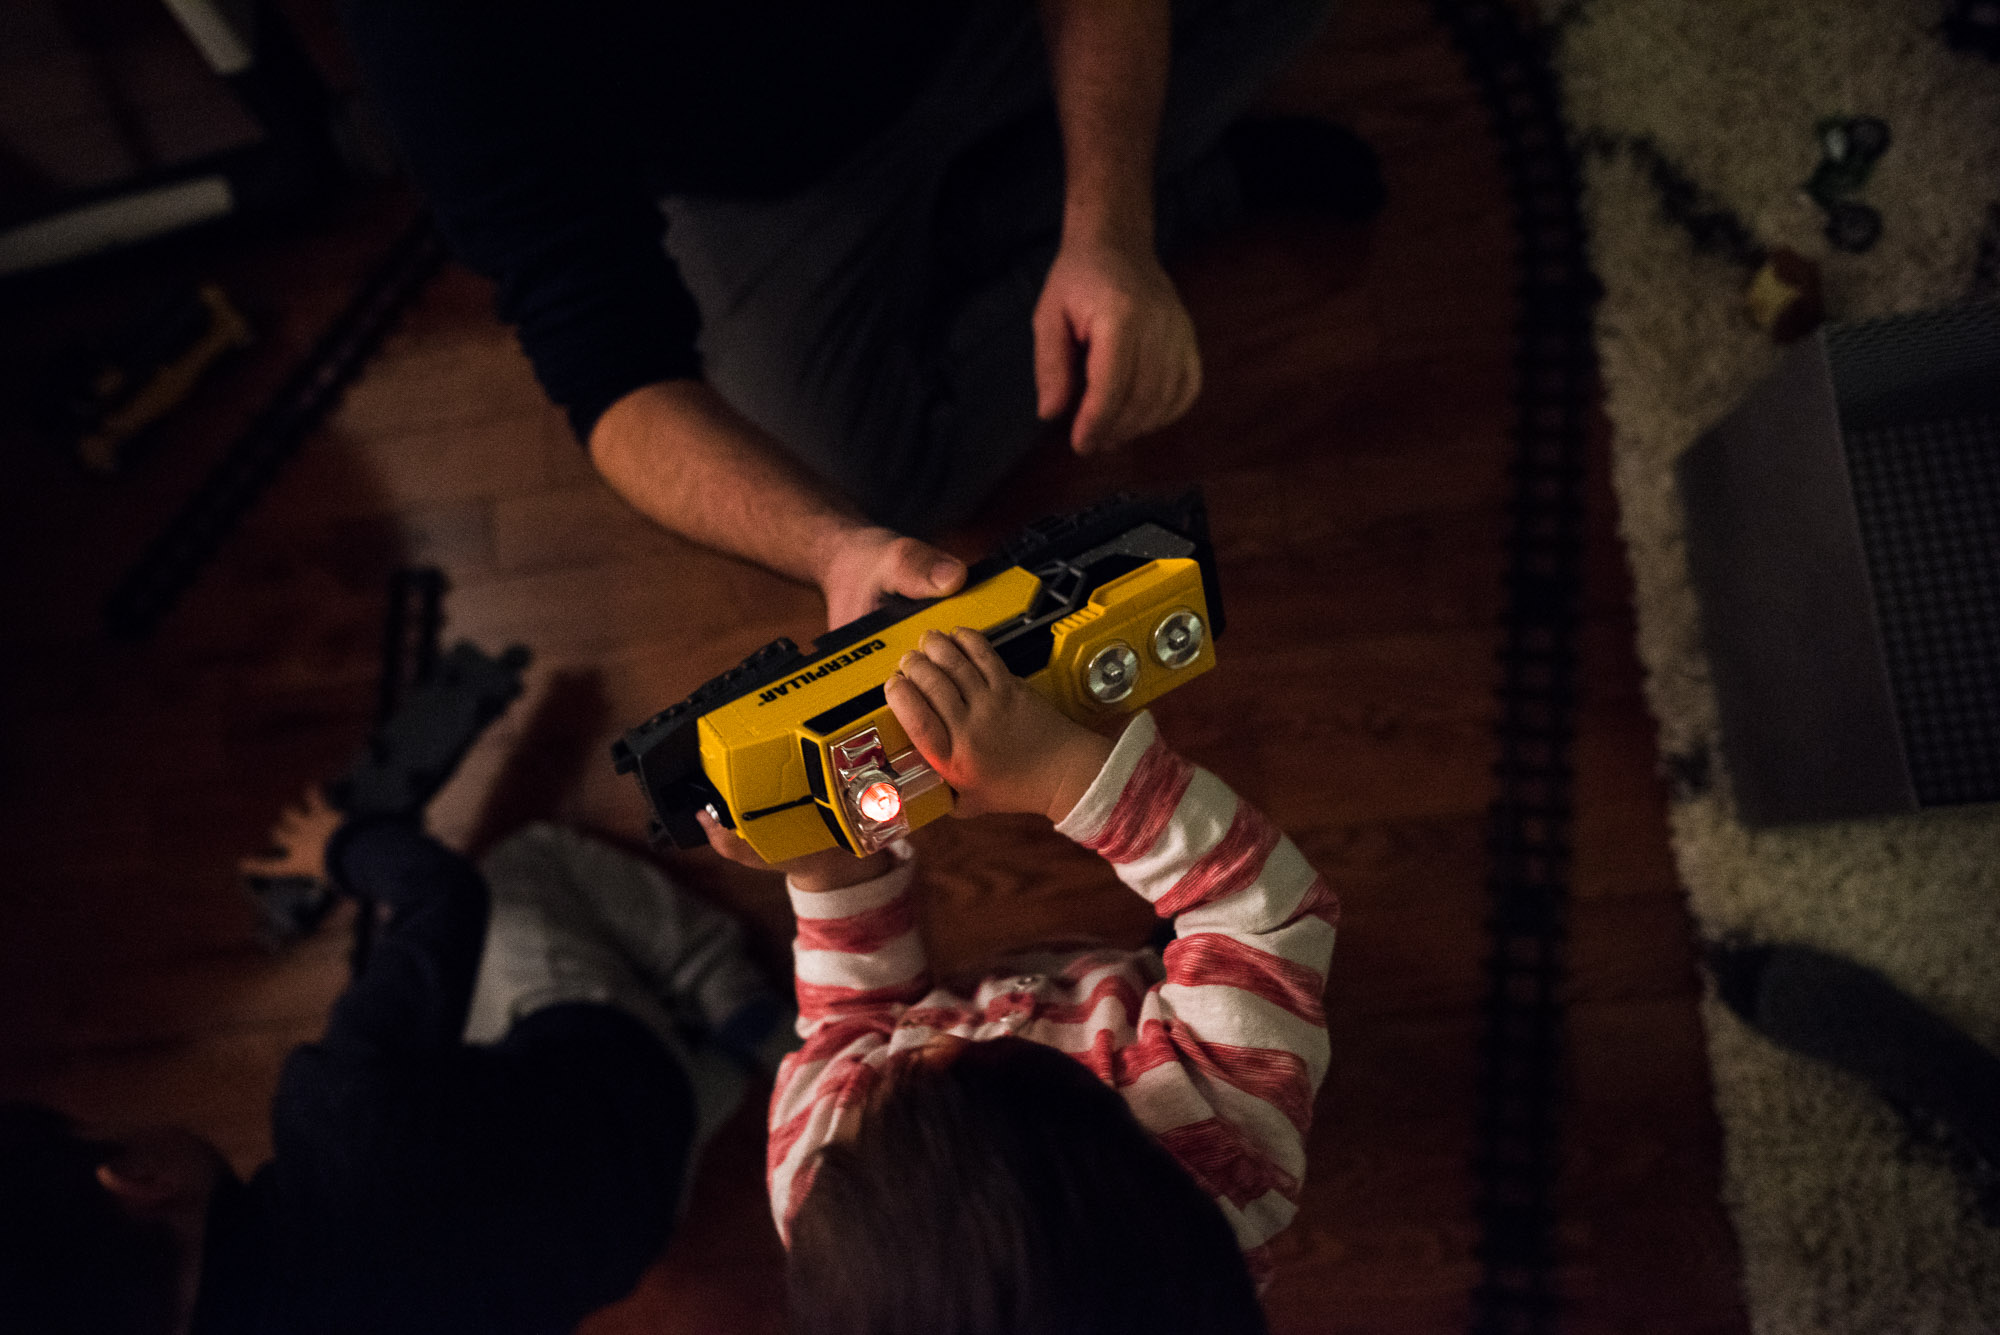 toddler and dad hold up a yellow toy train